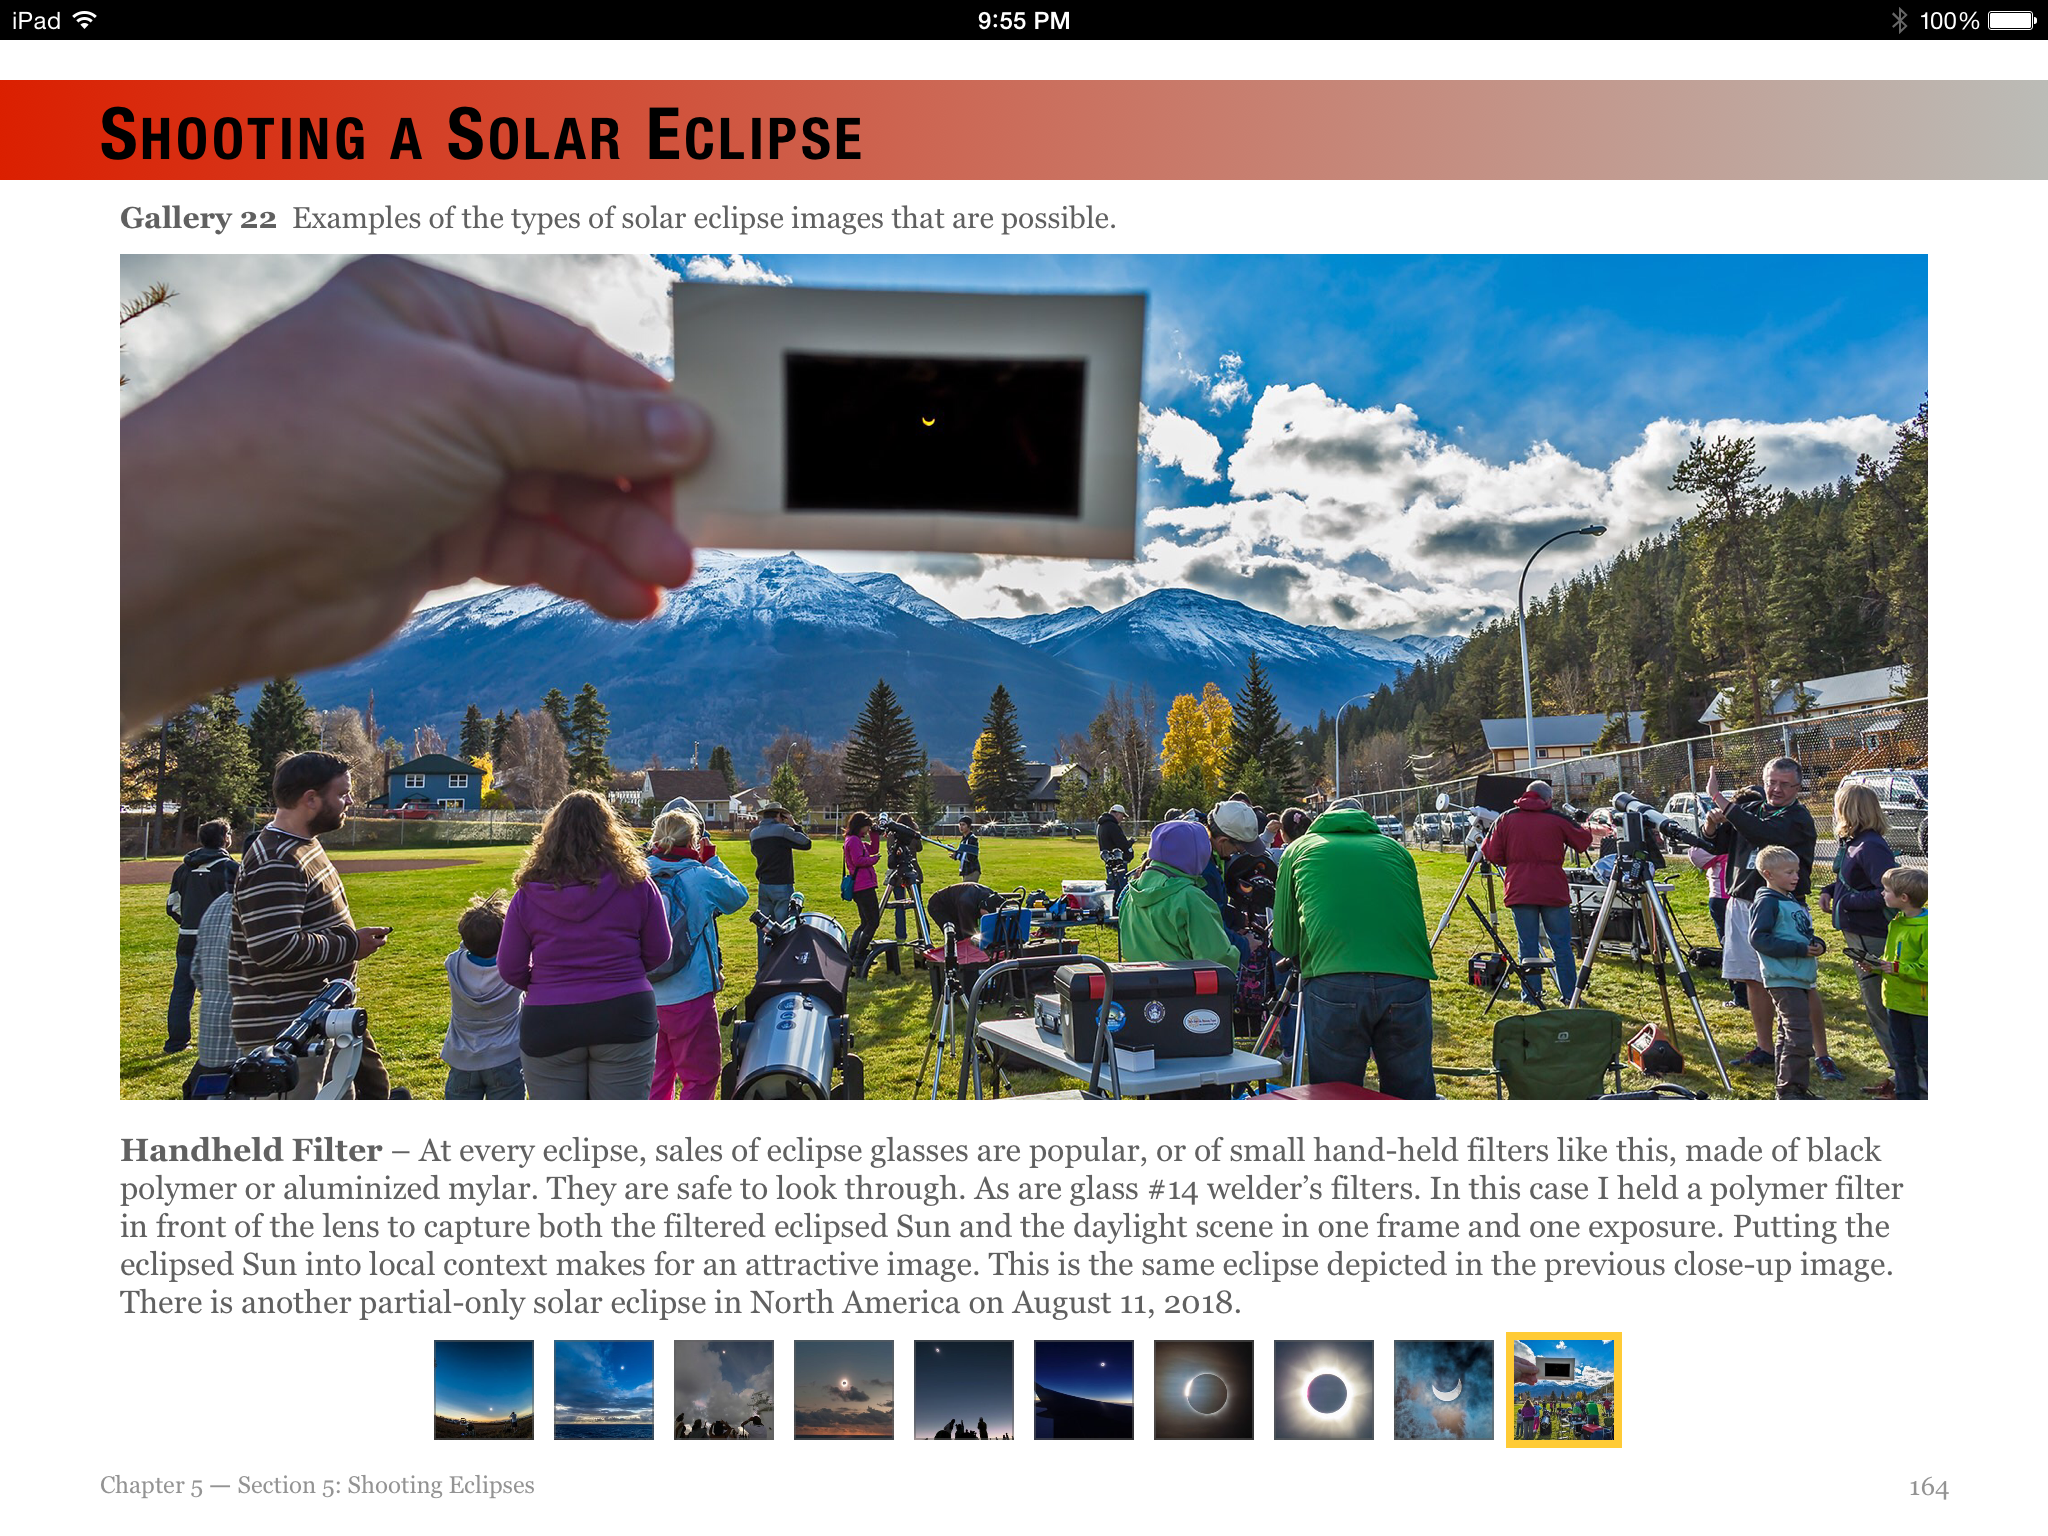 A page from the section on eclipse photography